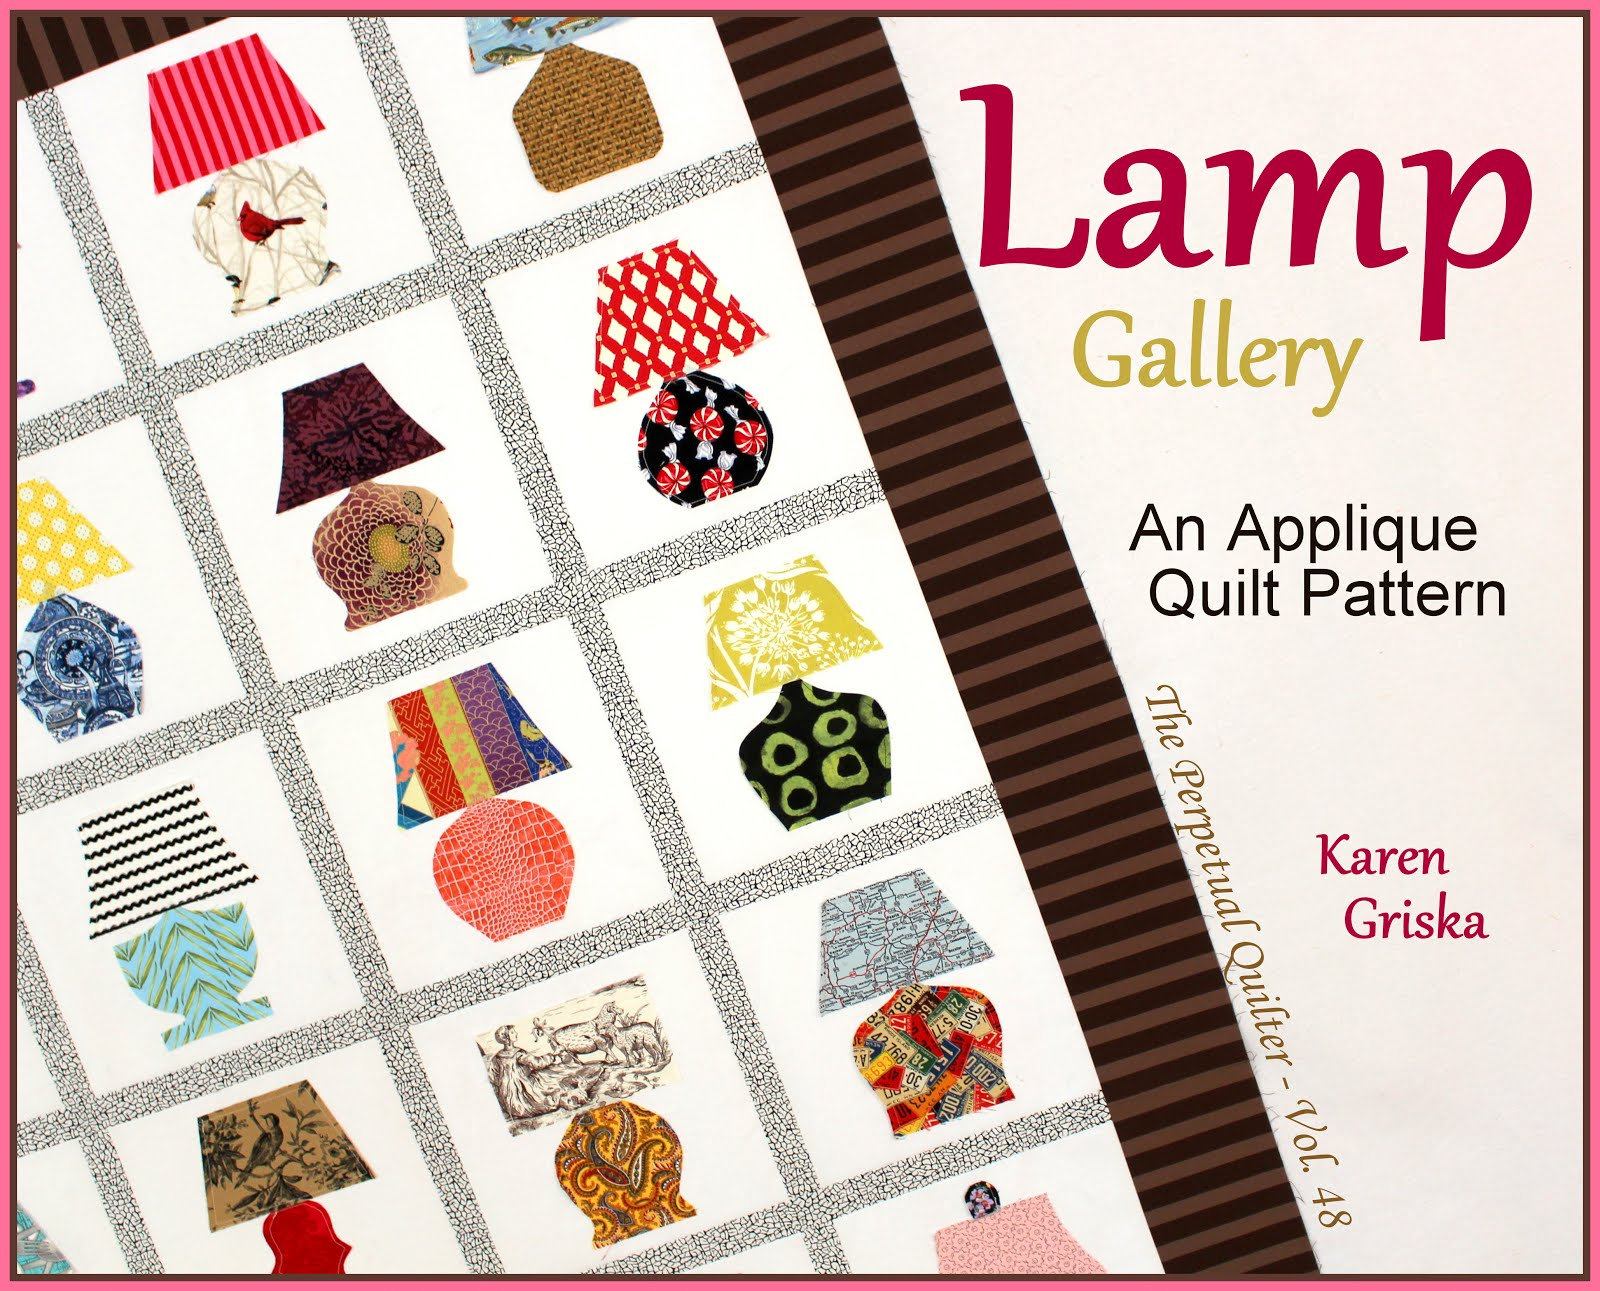 New Pattern! Lamp Gallery